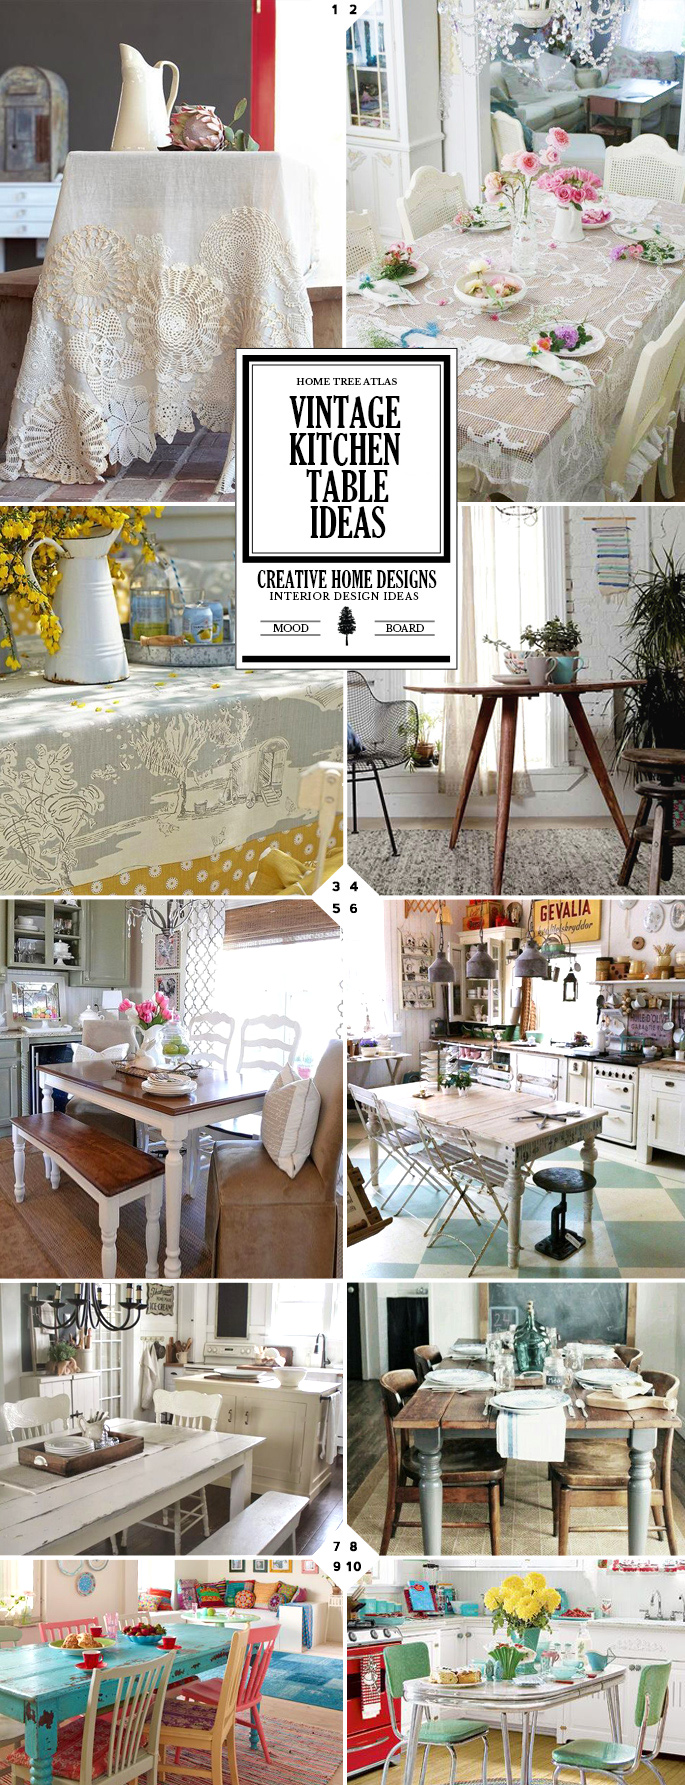 Style Guide: 10 Vintage Kitchen Table Ideas and Designs